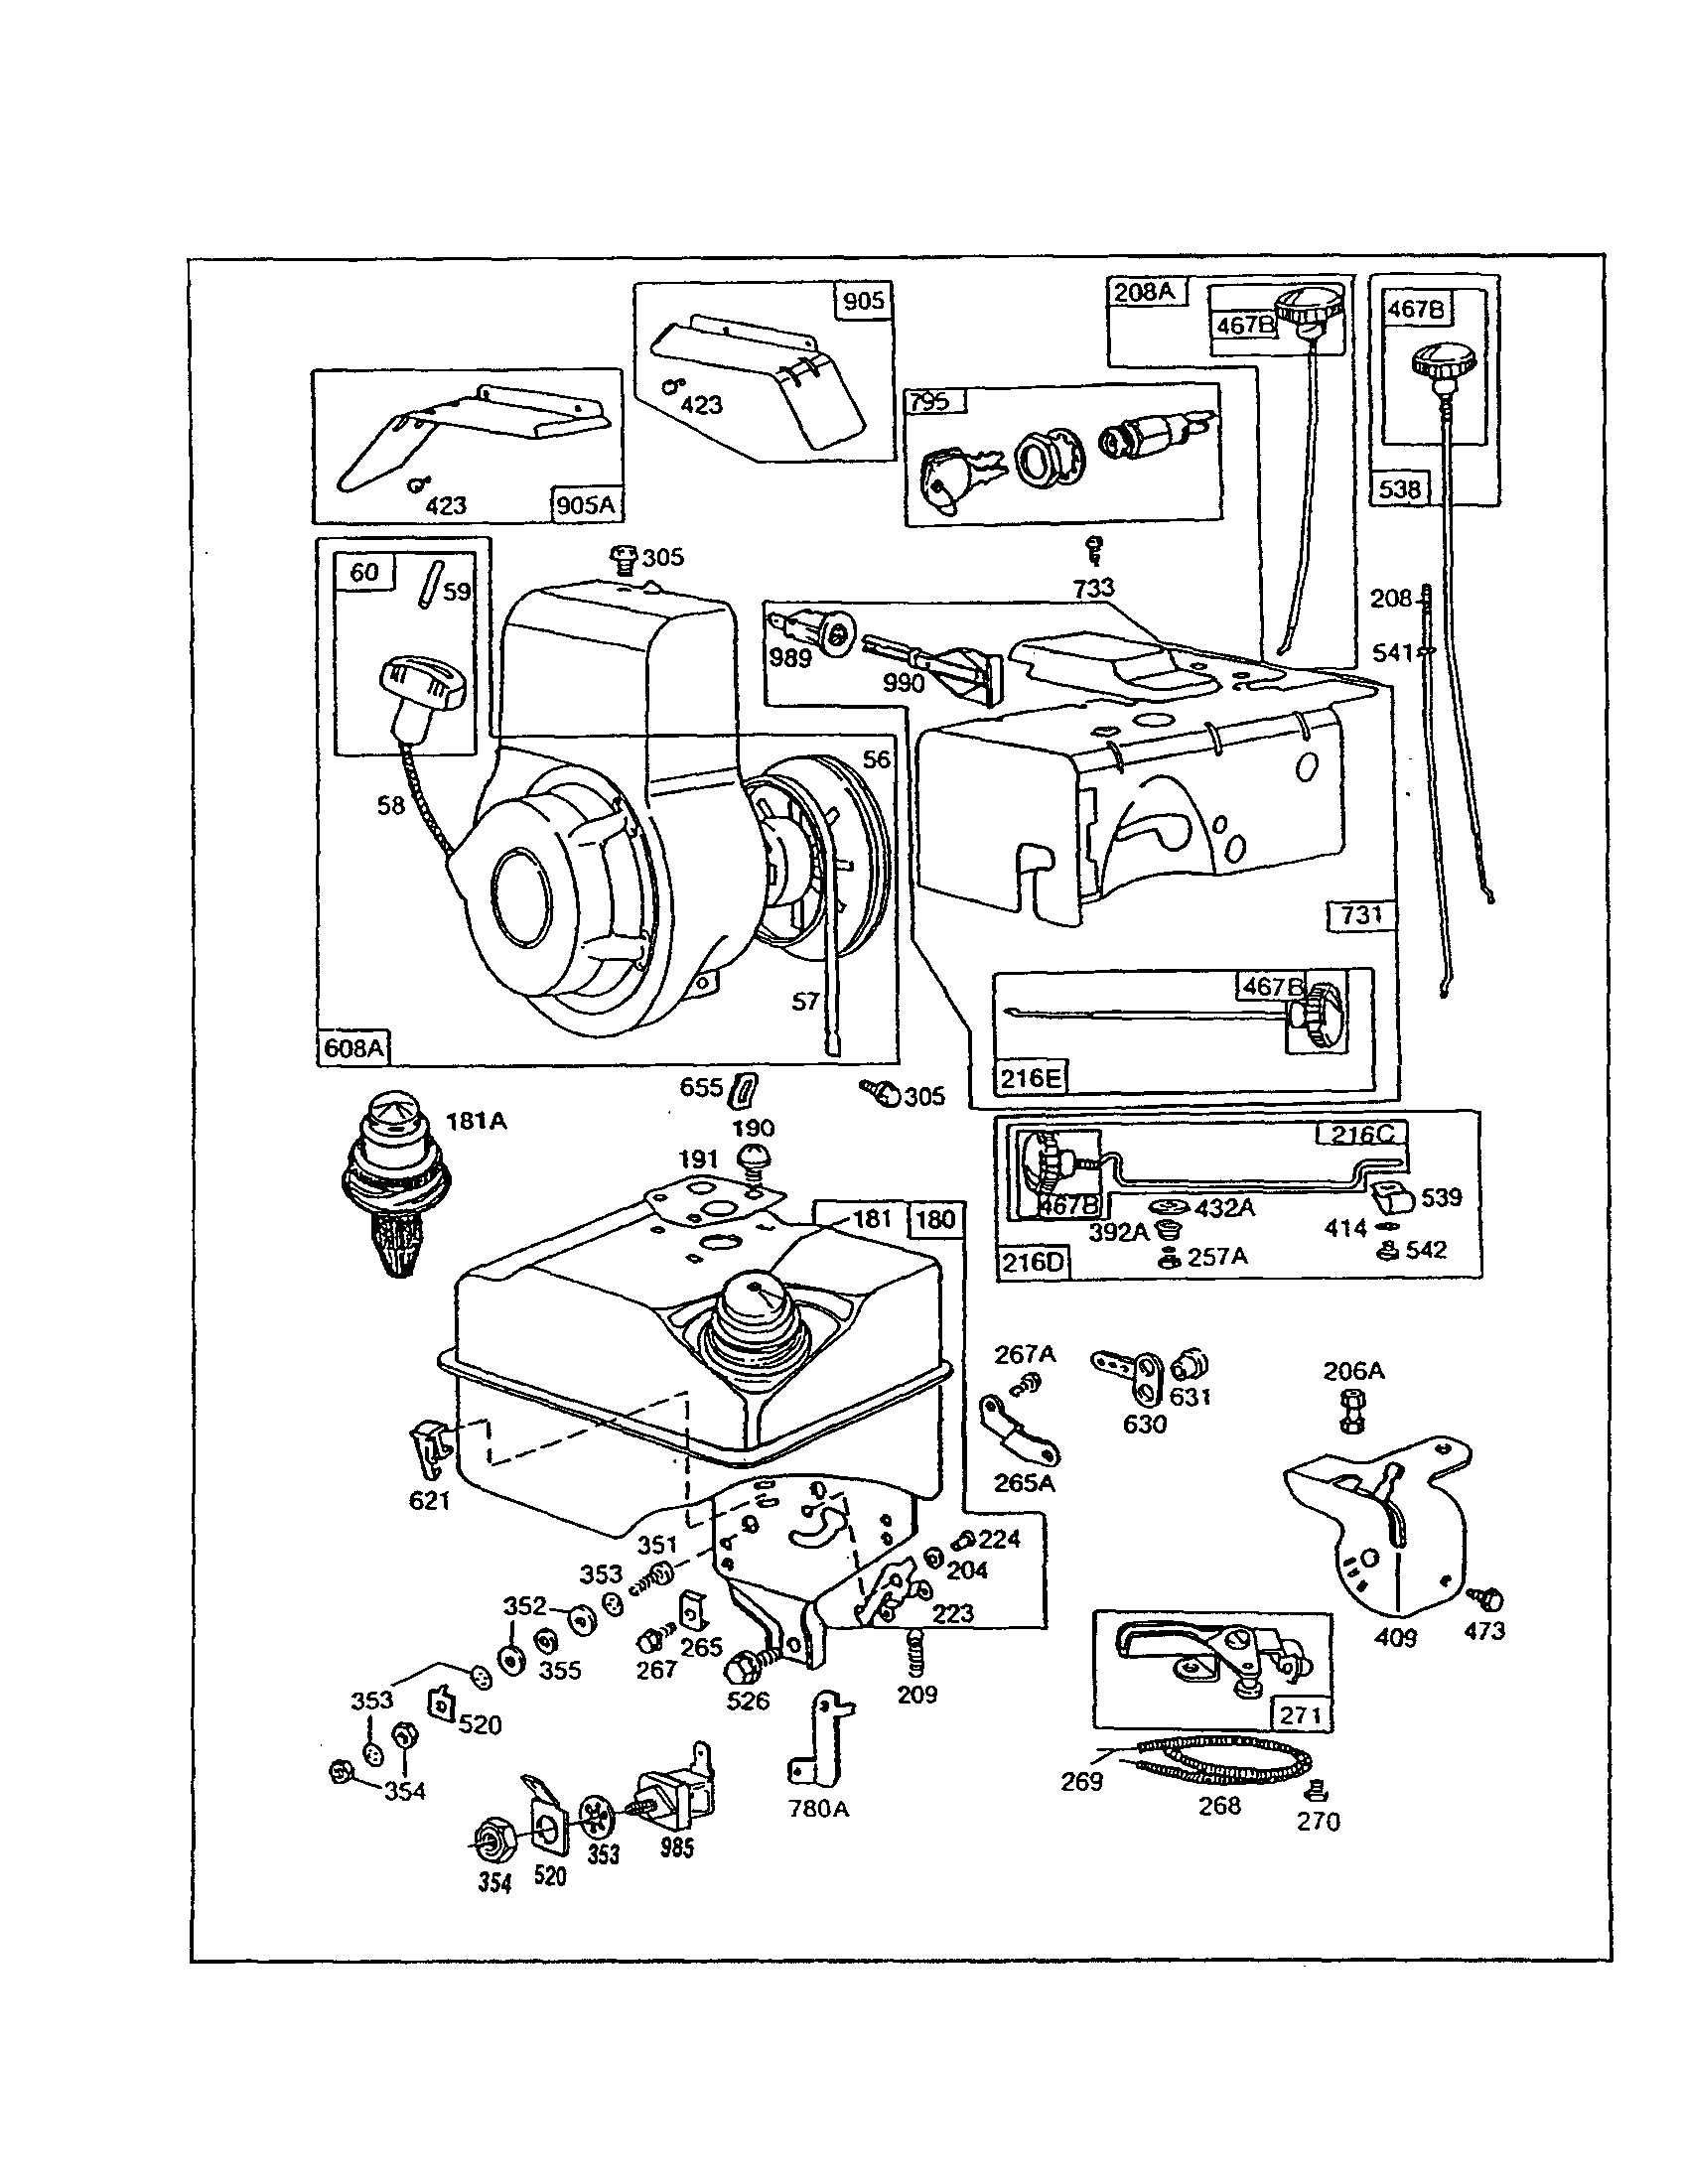 Briggs & Stratton 130200 TO 130299 (1575, 1601, 1602) starter-rewind/tank-fuel diagram